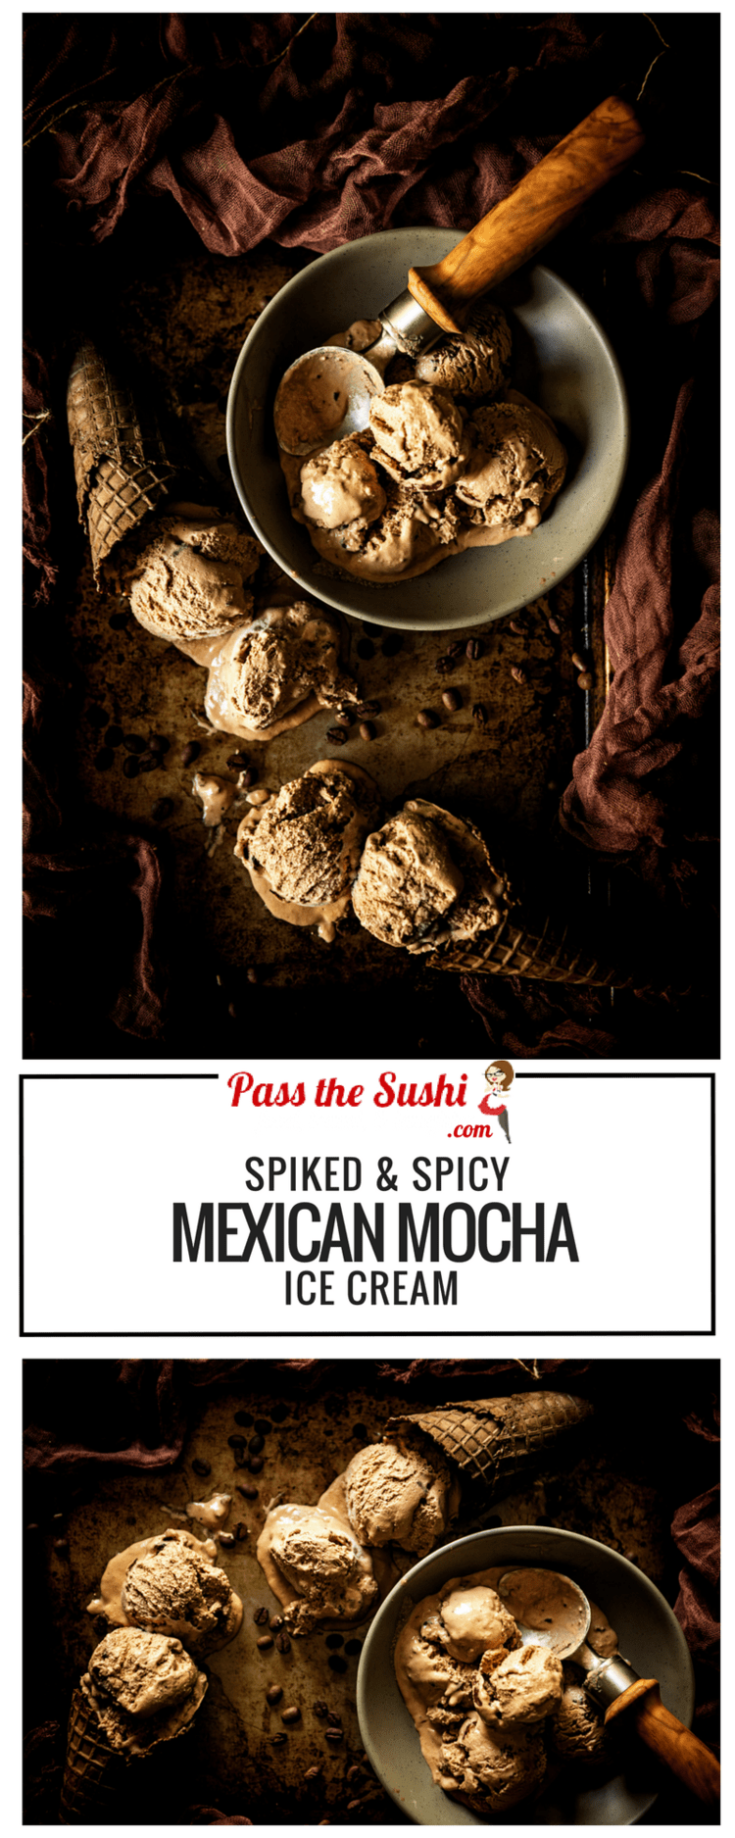 Spiked & Spicy Mexican Mocha Ice Cream Recipe - Pass The Sushi